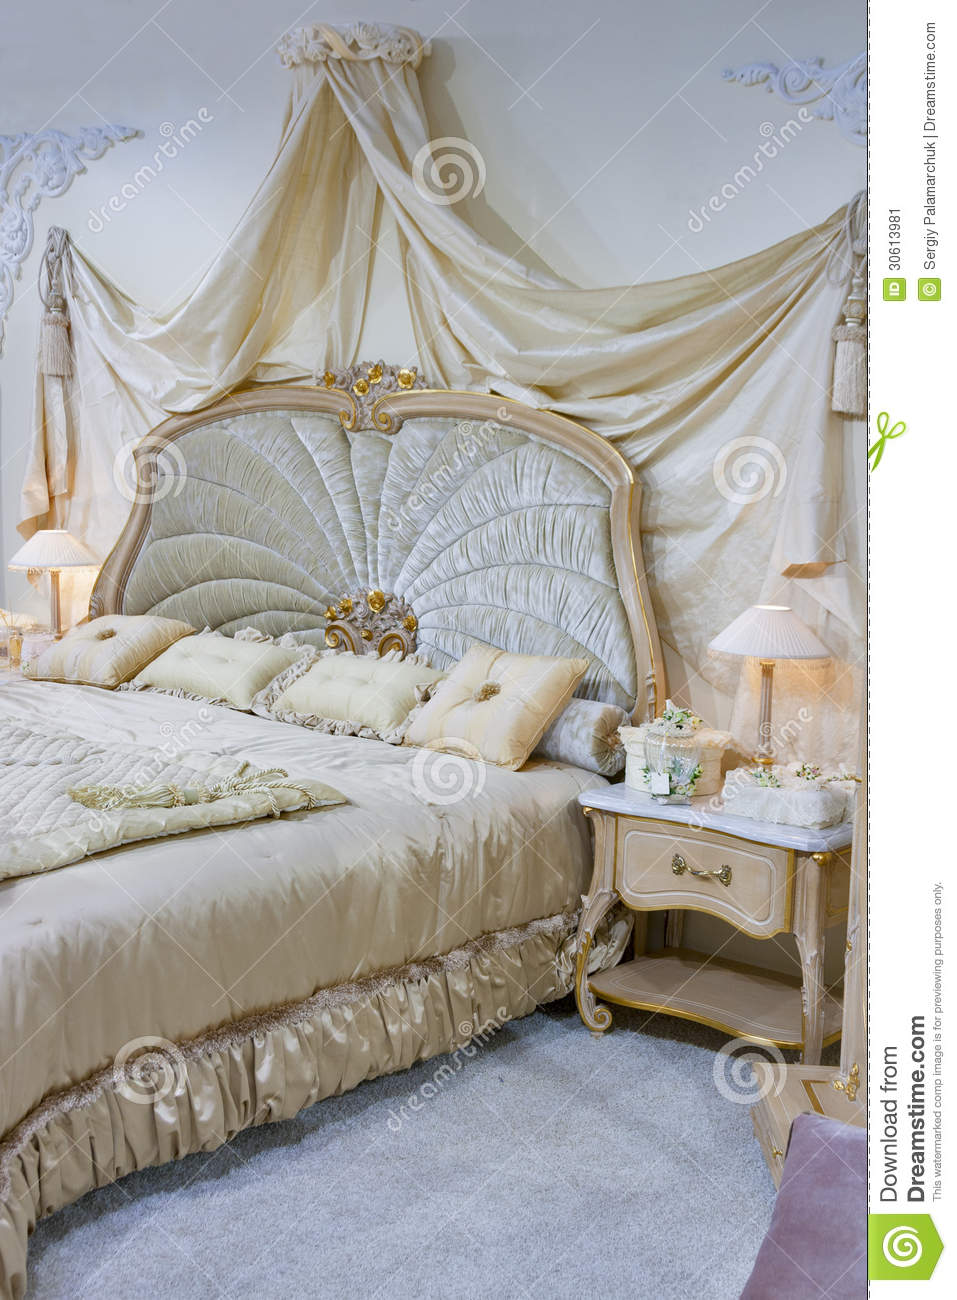 chambre coucher baroque image stock image 30613981. Black Bedroom Furniture Sets. Home Design Ideas